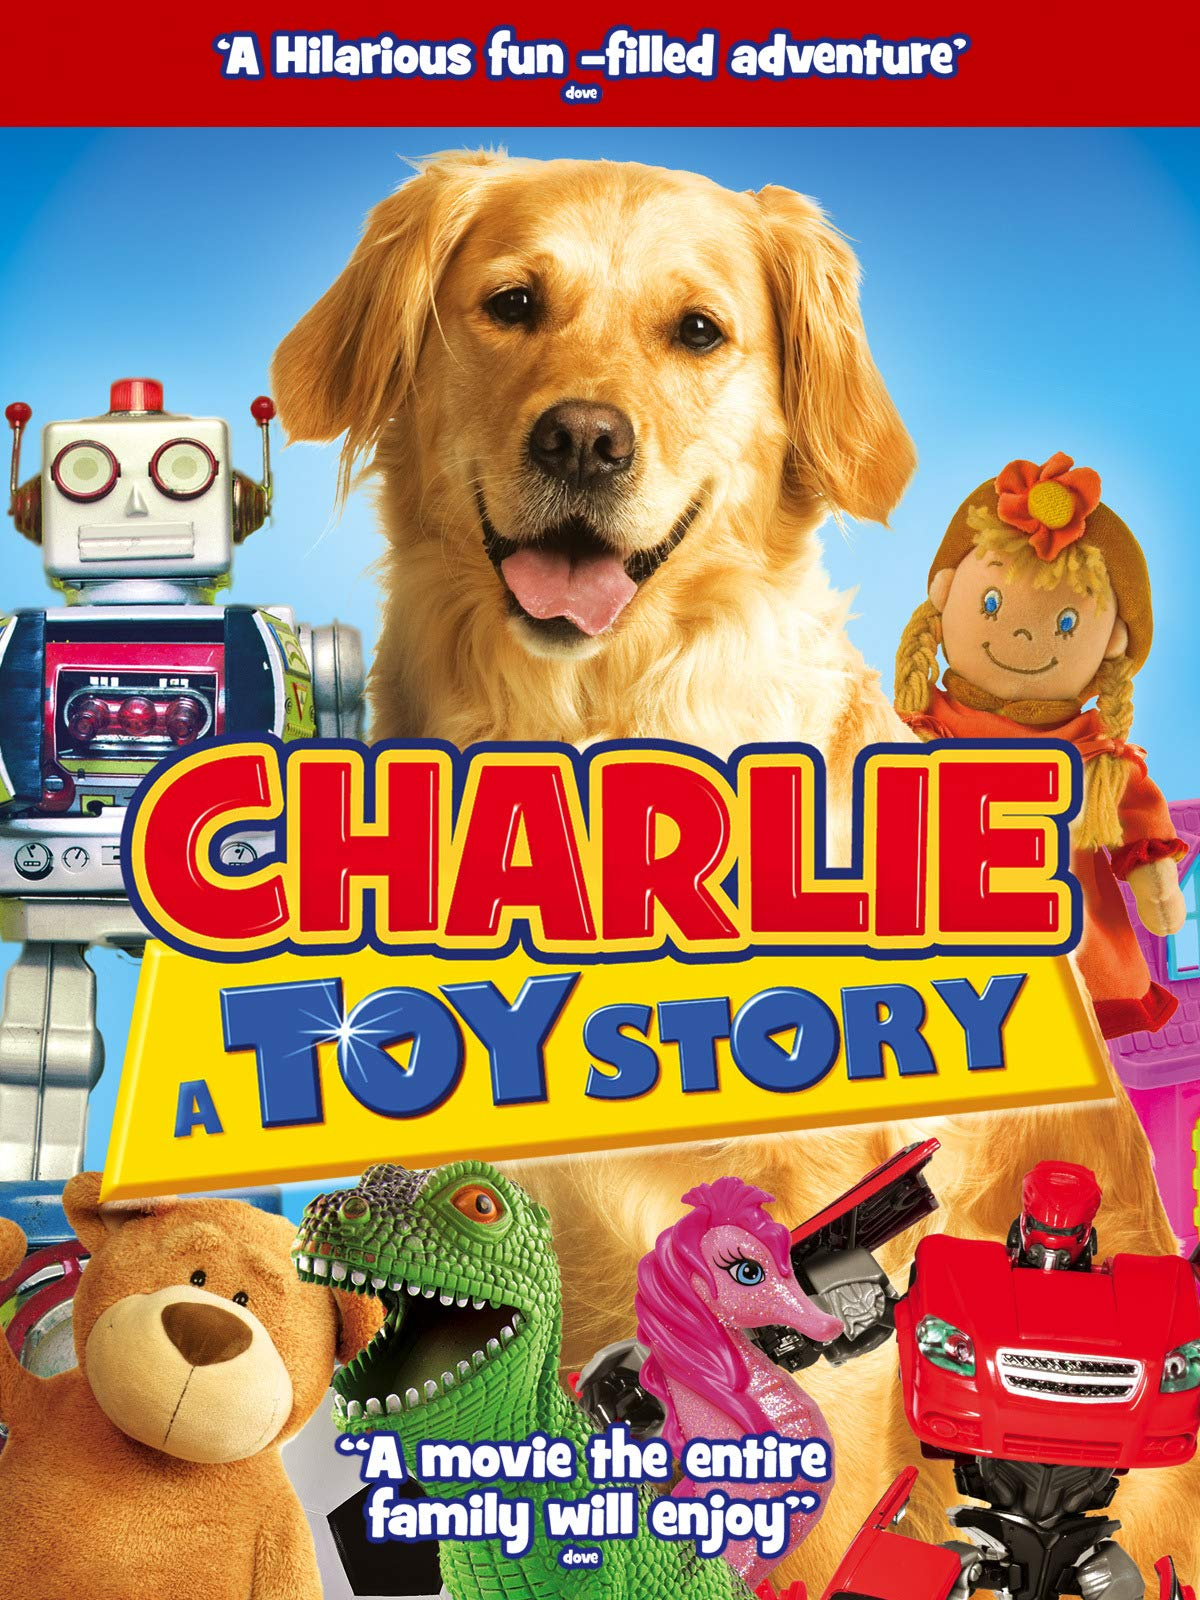 Charlie a Toy Story